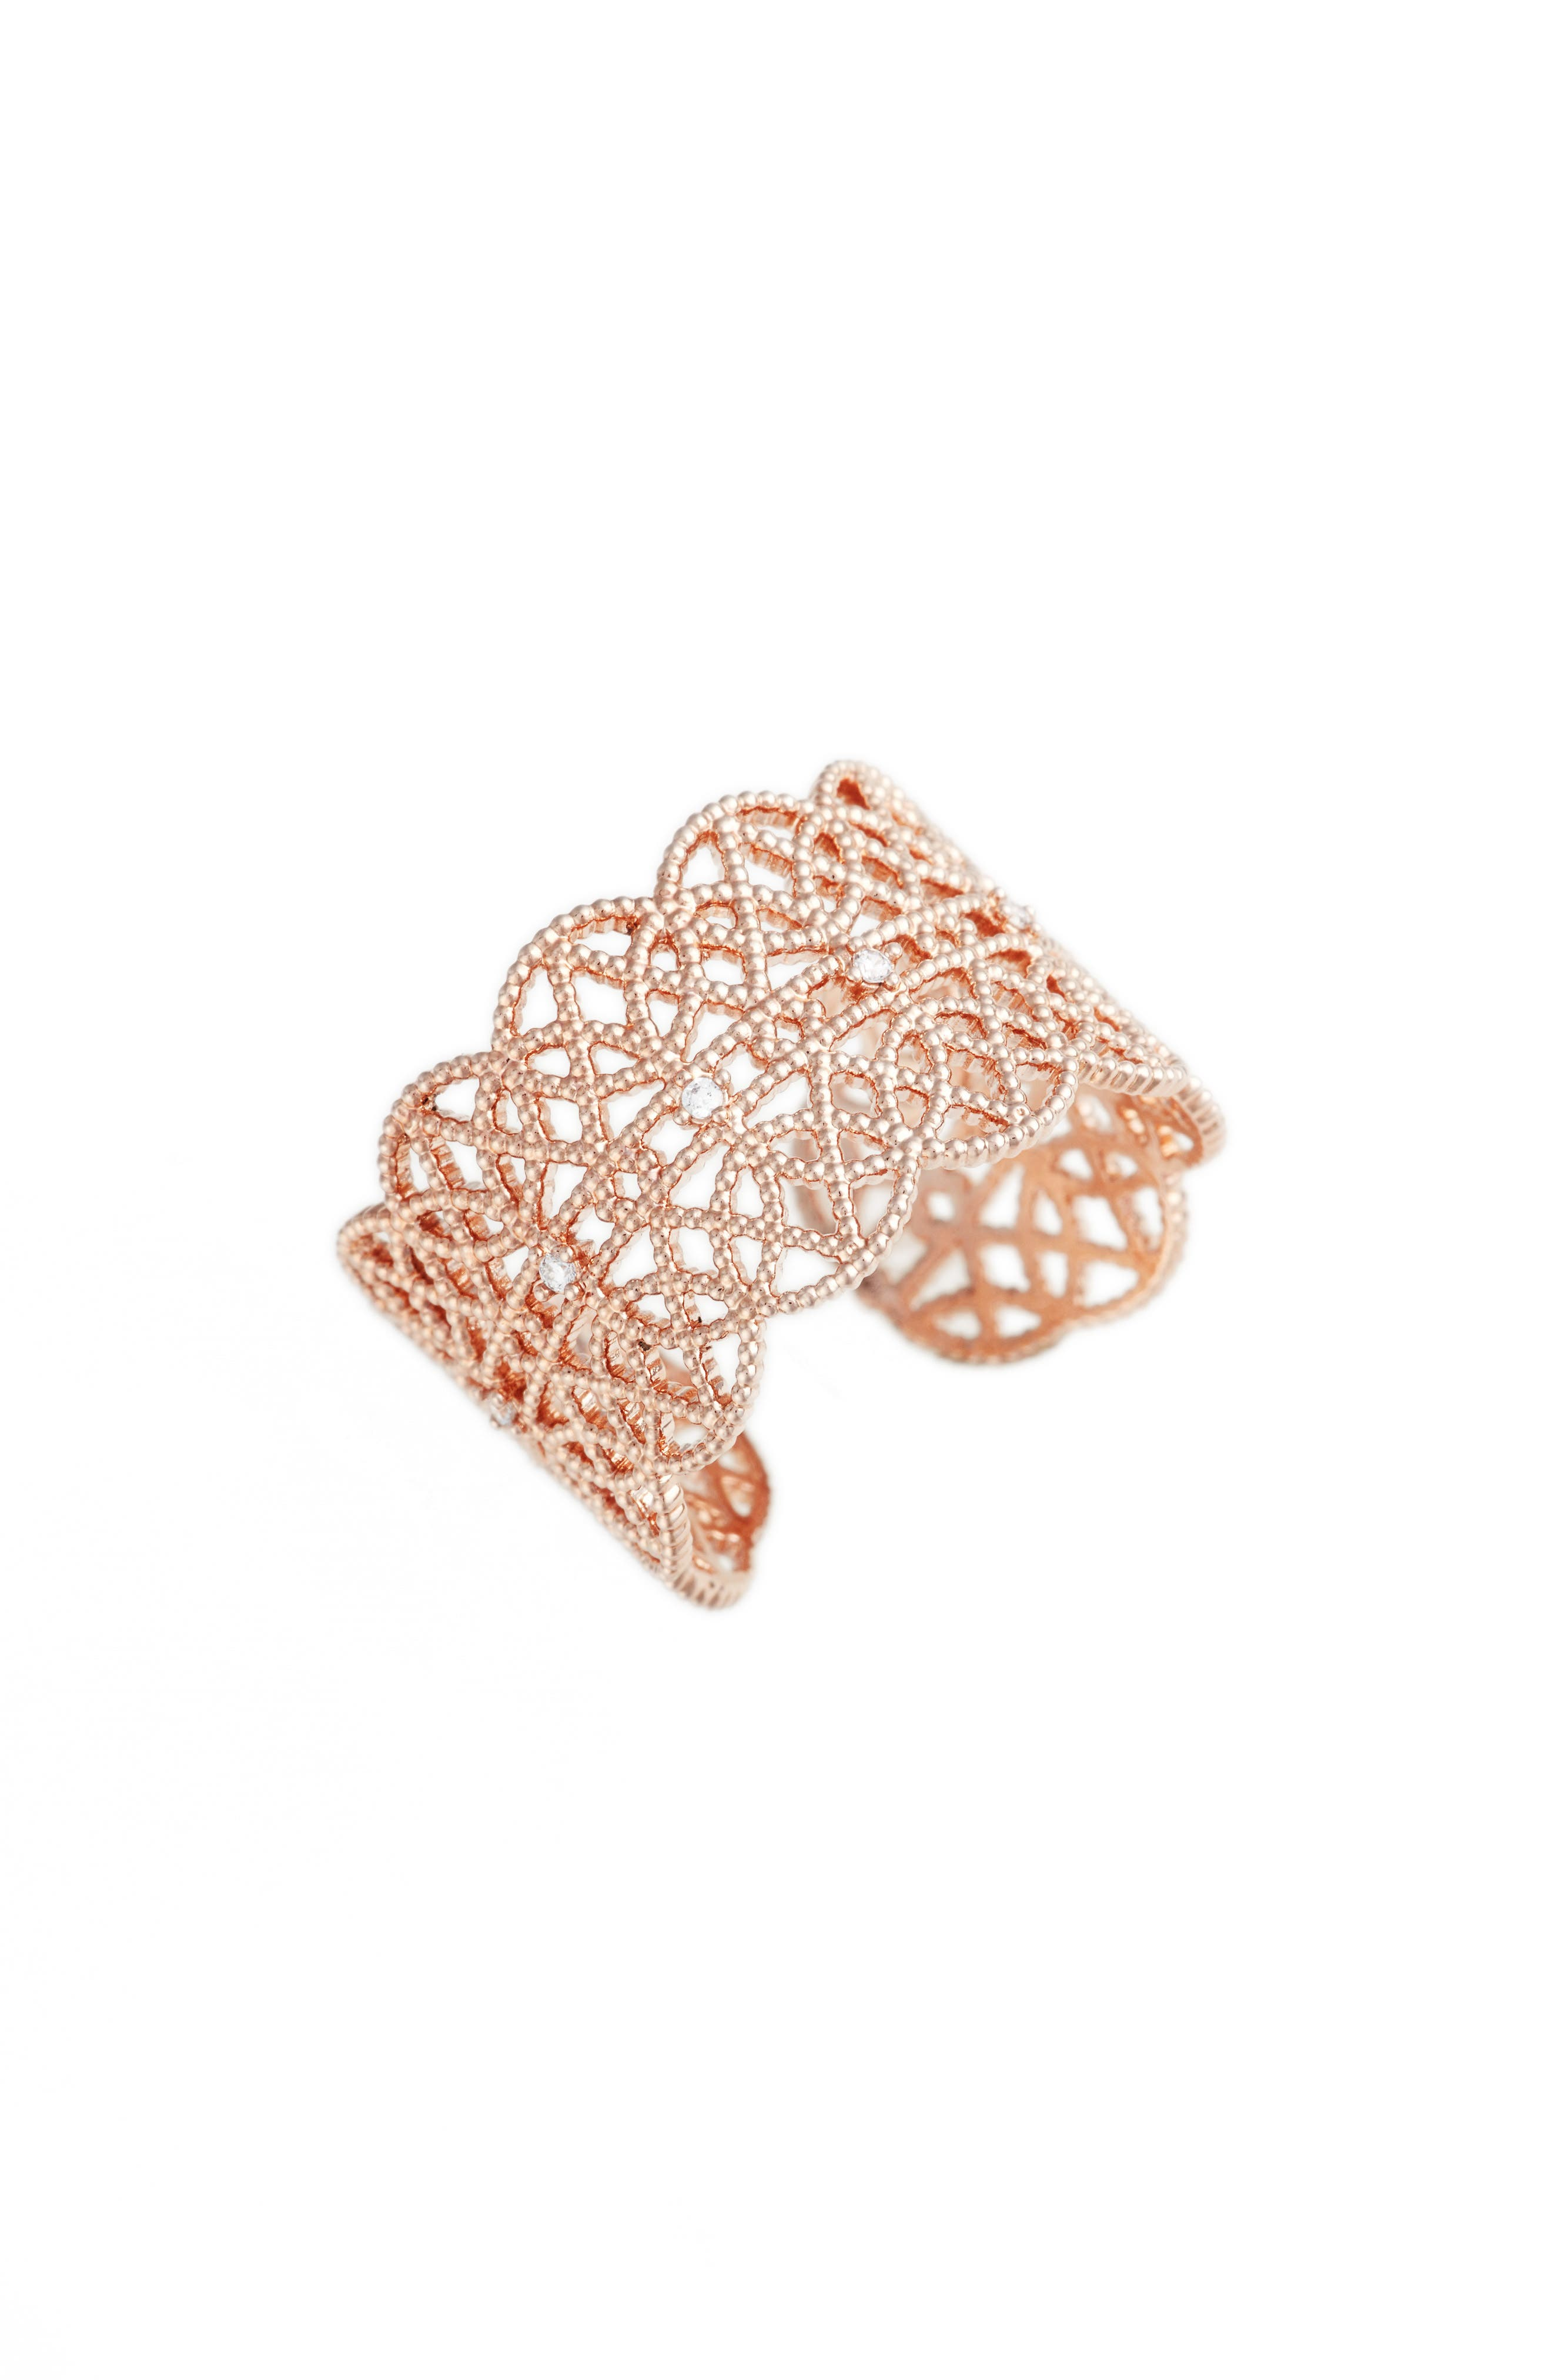 Alternate Image 1 Selected - Jules Smith Pavé Lace Cuff Ring